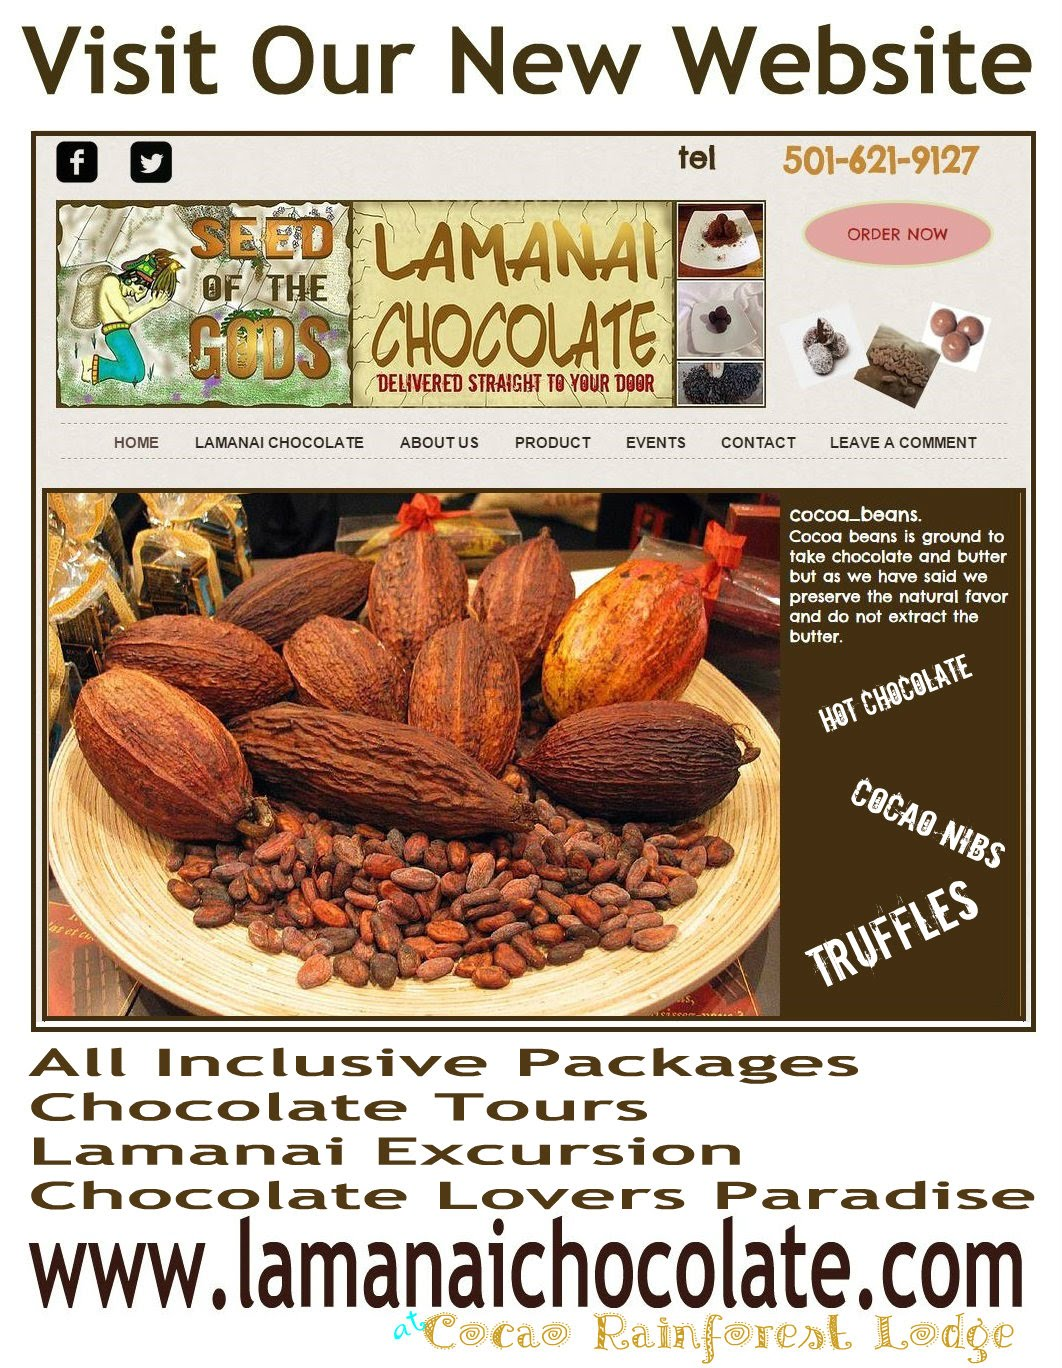 https://sites.google.com/site/bnbbelize2/lamanai-chocolate-at-cocao-rainforest-lodge/Lam%20Push%202.JPG